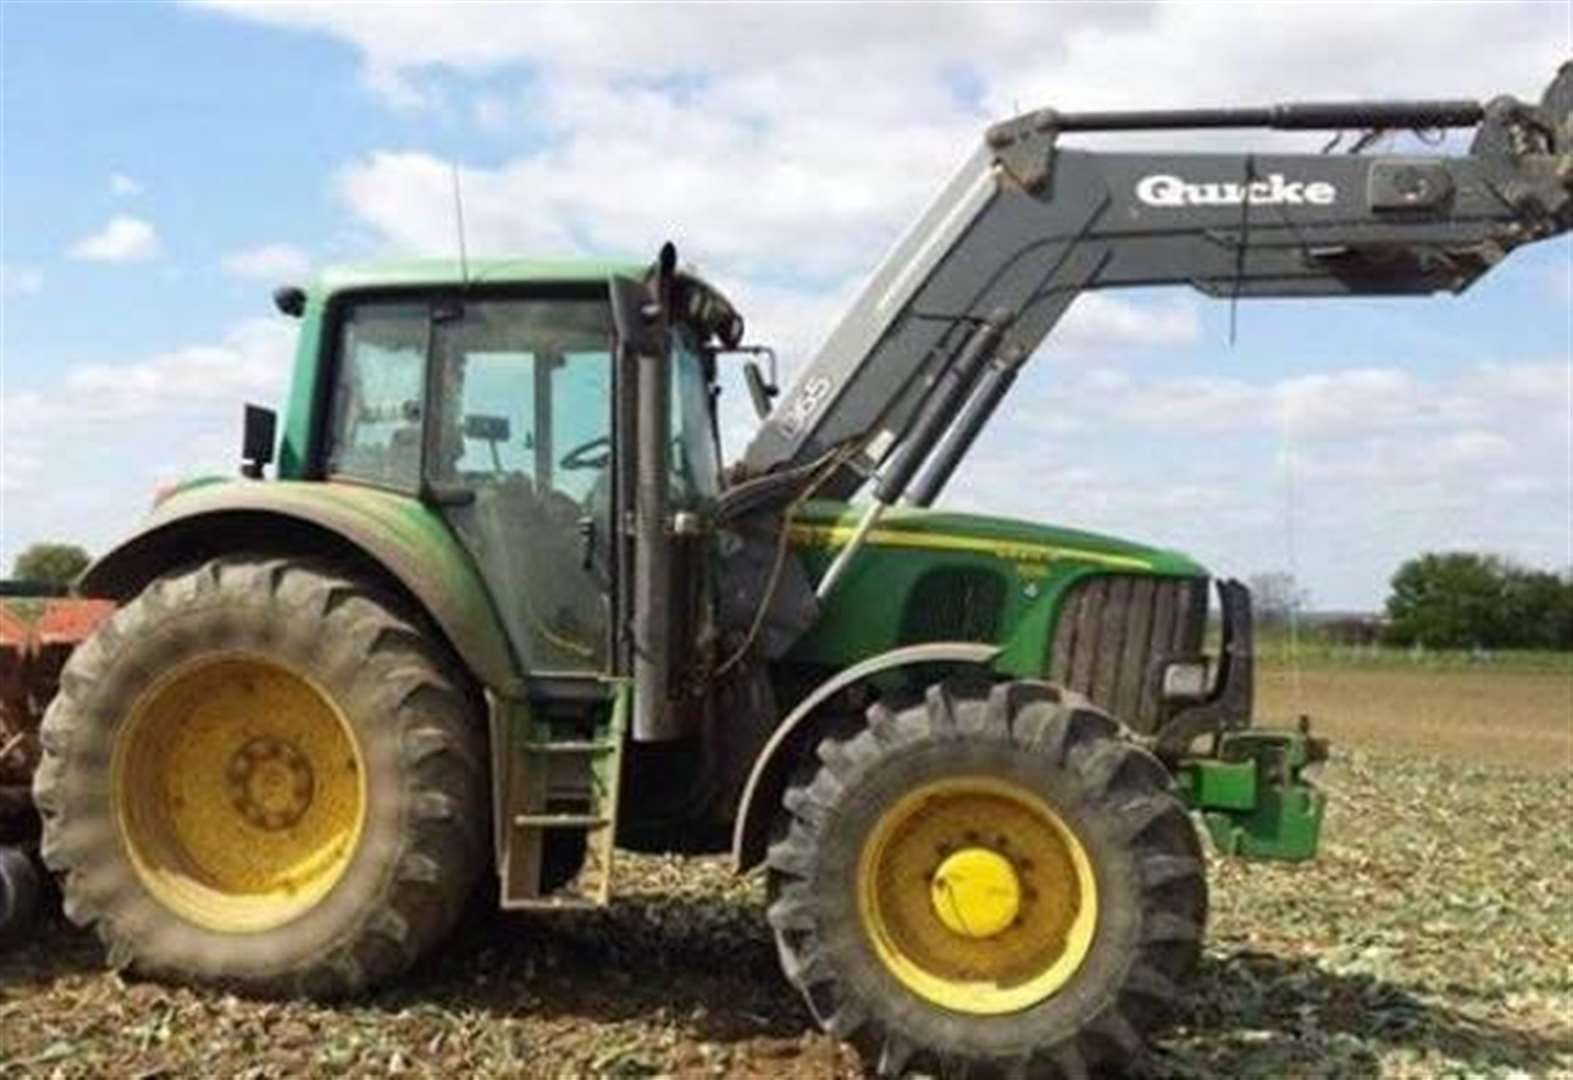 South Holland tractor thefts confirm trend shown in new crime survey